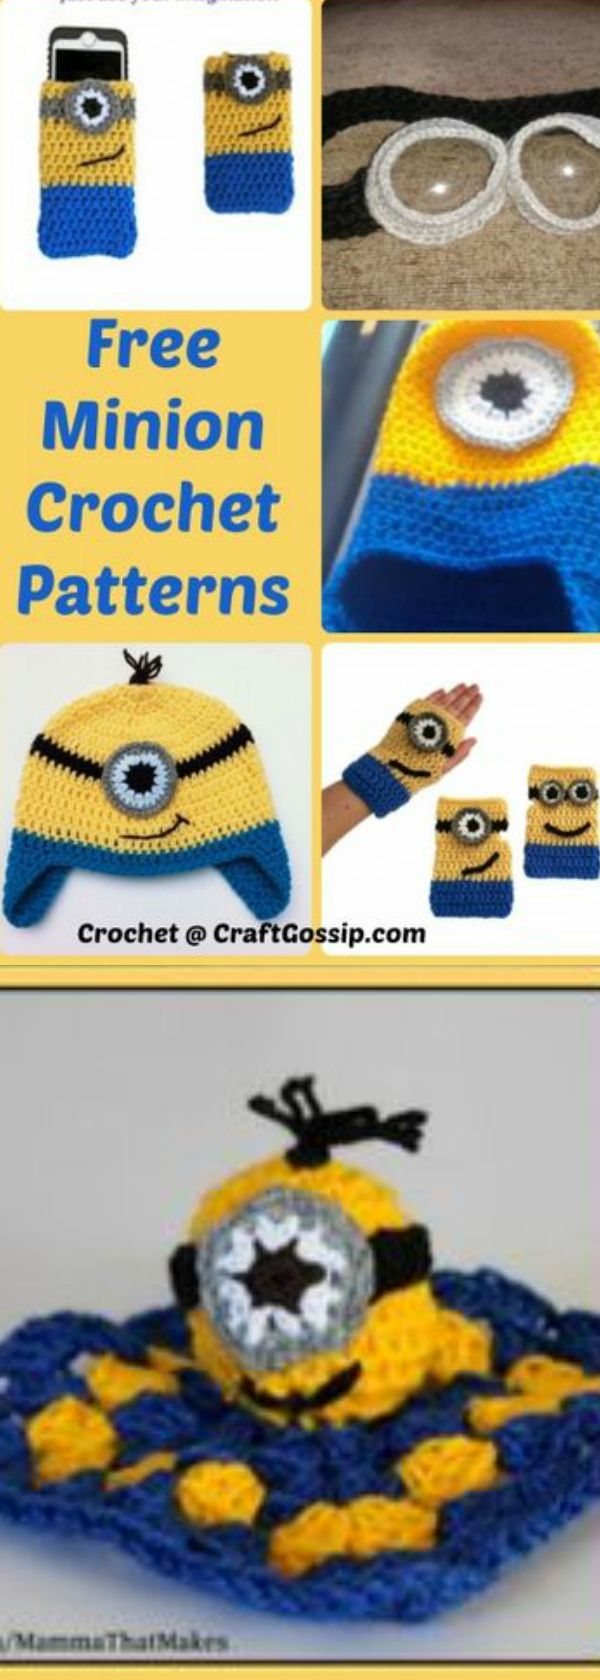 The 25 best minion crochet patterns ideas on pinterest crochet free crochet patterns for minion crochet toys and beanie crochet pattern bankloansurffo Images